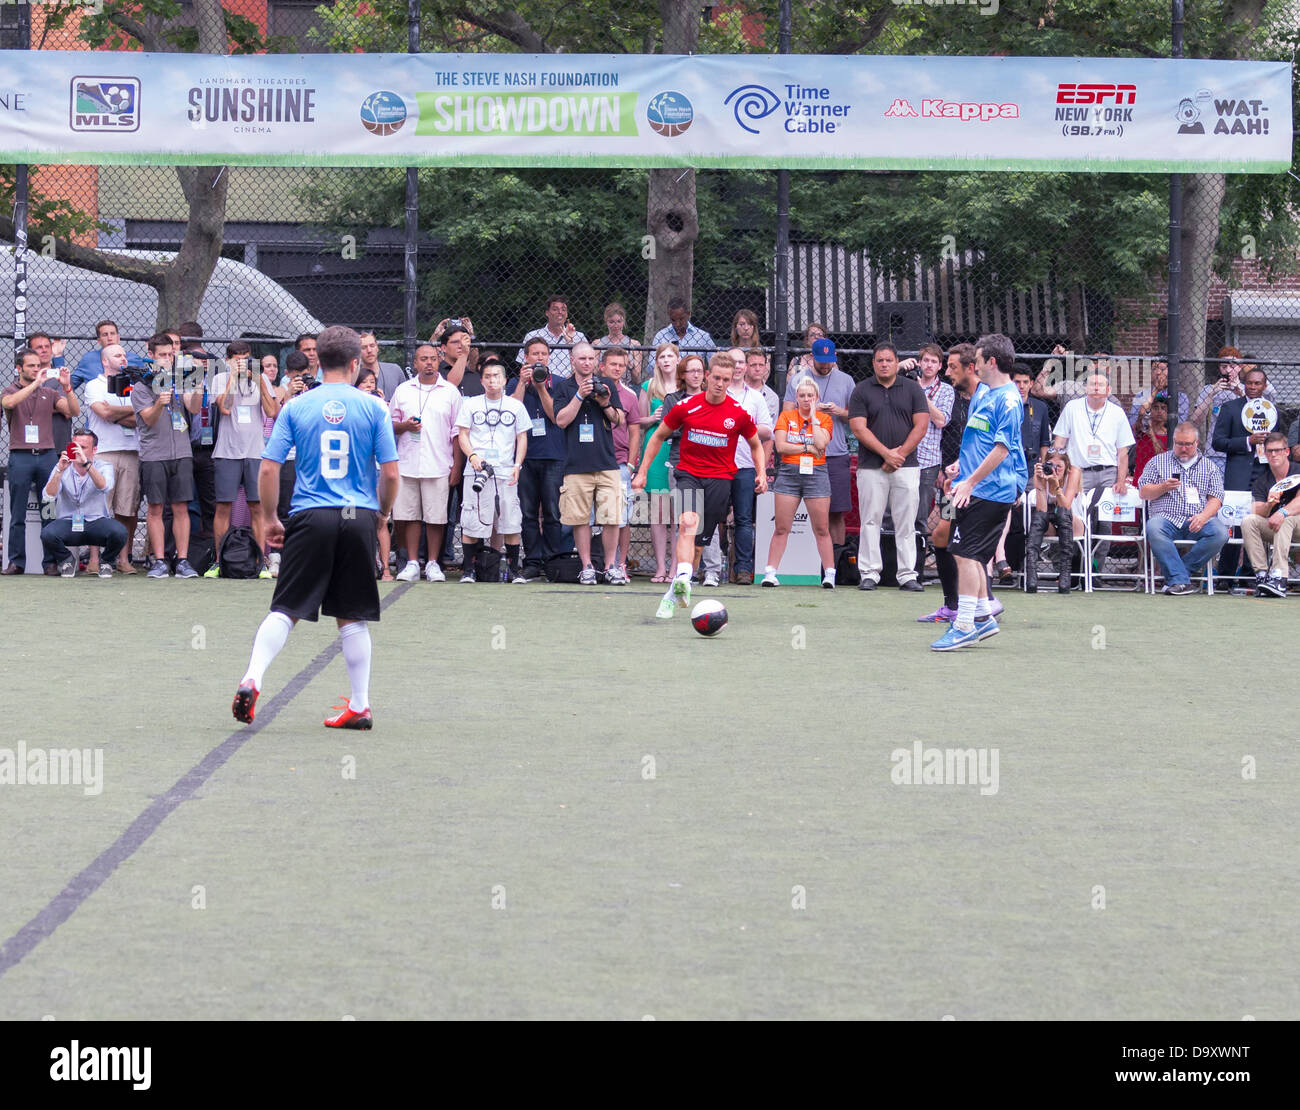 The Sixth Steve Nash Foundation Showdown - Stock Image